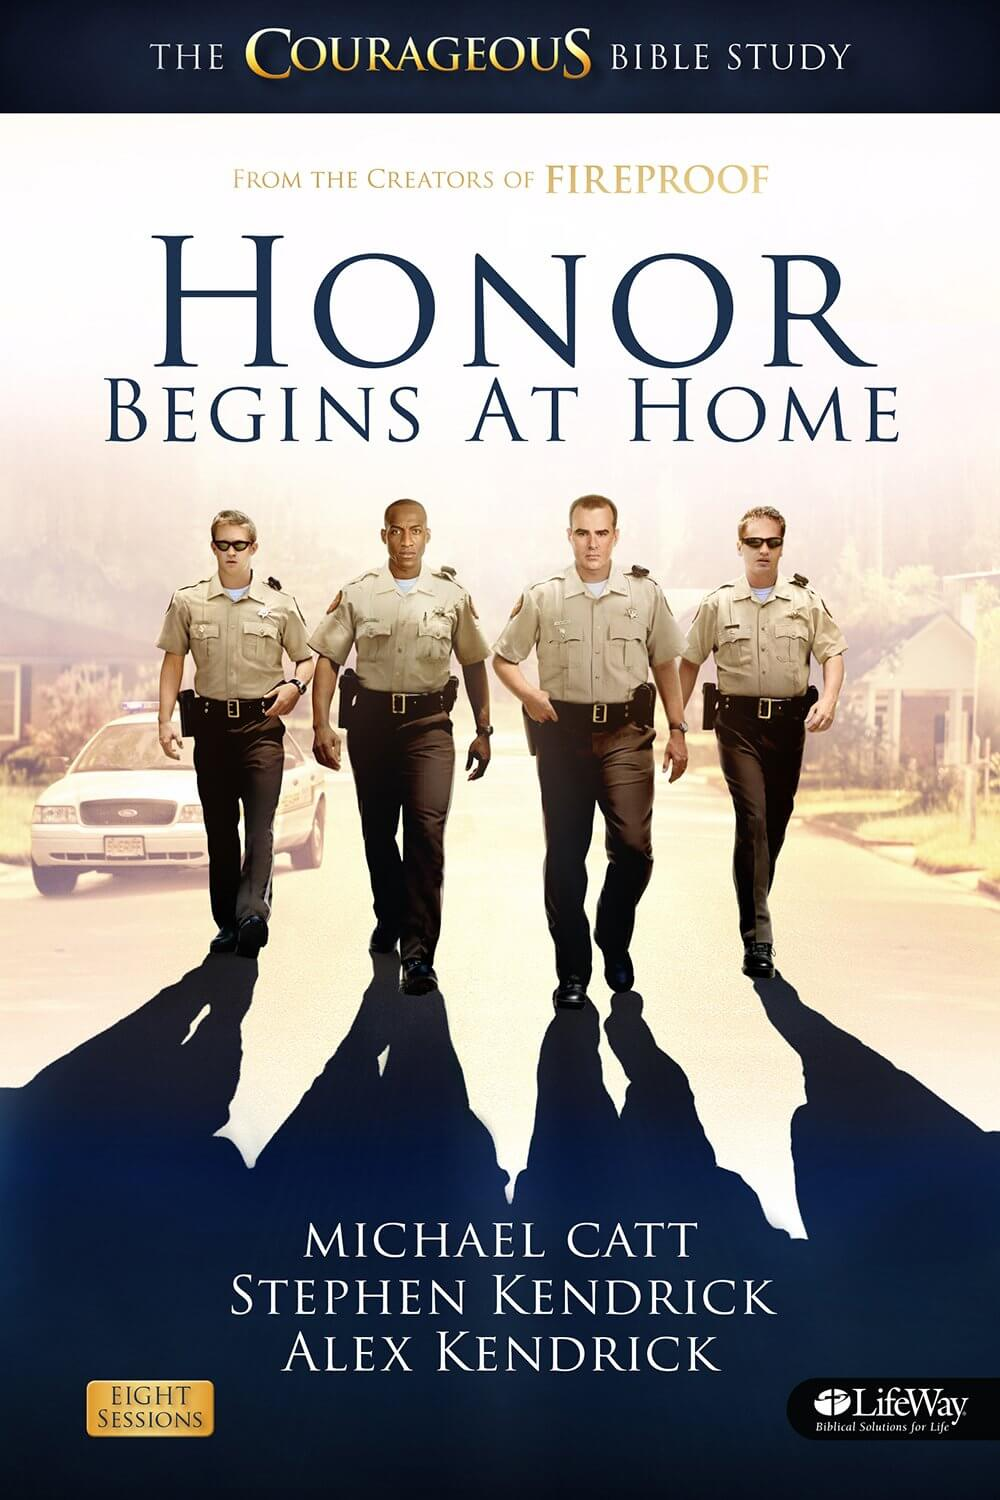 HONOR-BEGINS-AT-HOME-THE-COURAGEOUS-BIBLE-STUDY-LEADER-KIT